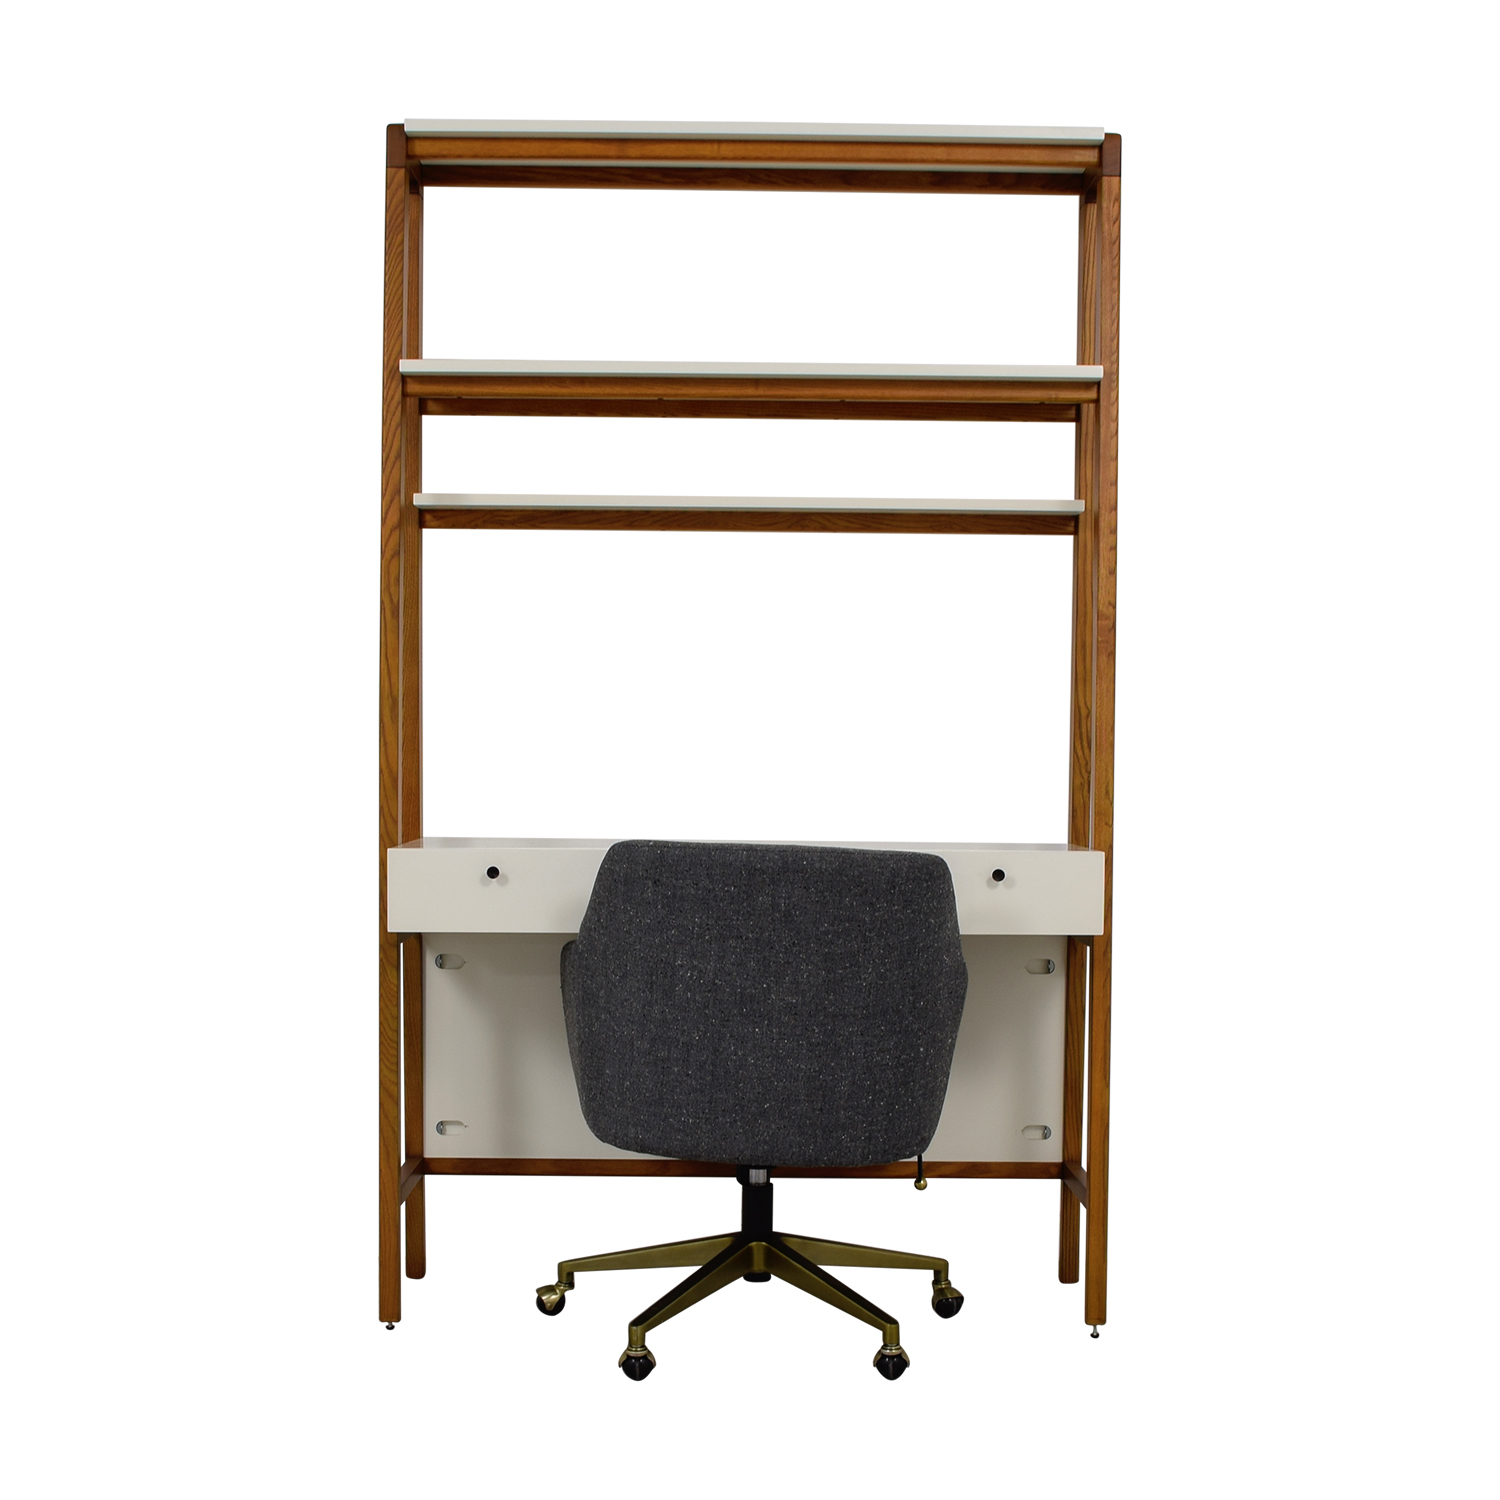 West Elm West Elm White and Wood Wall Desk and Chair nj